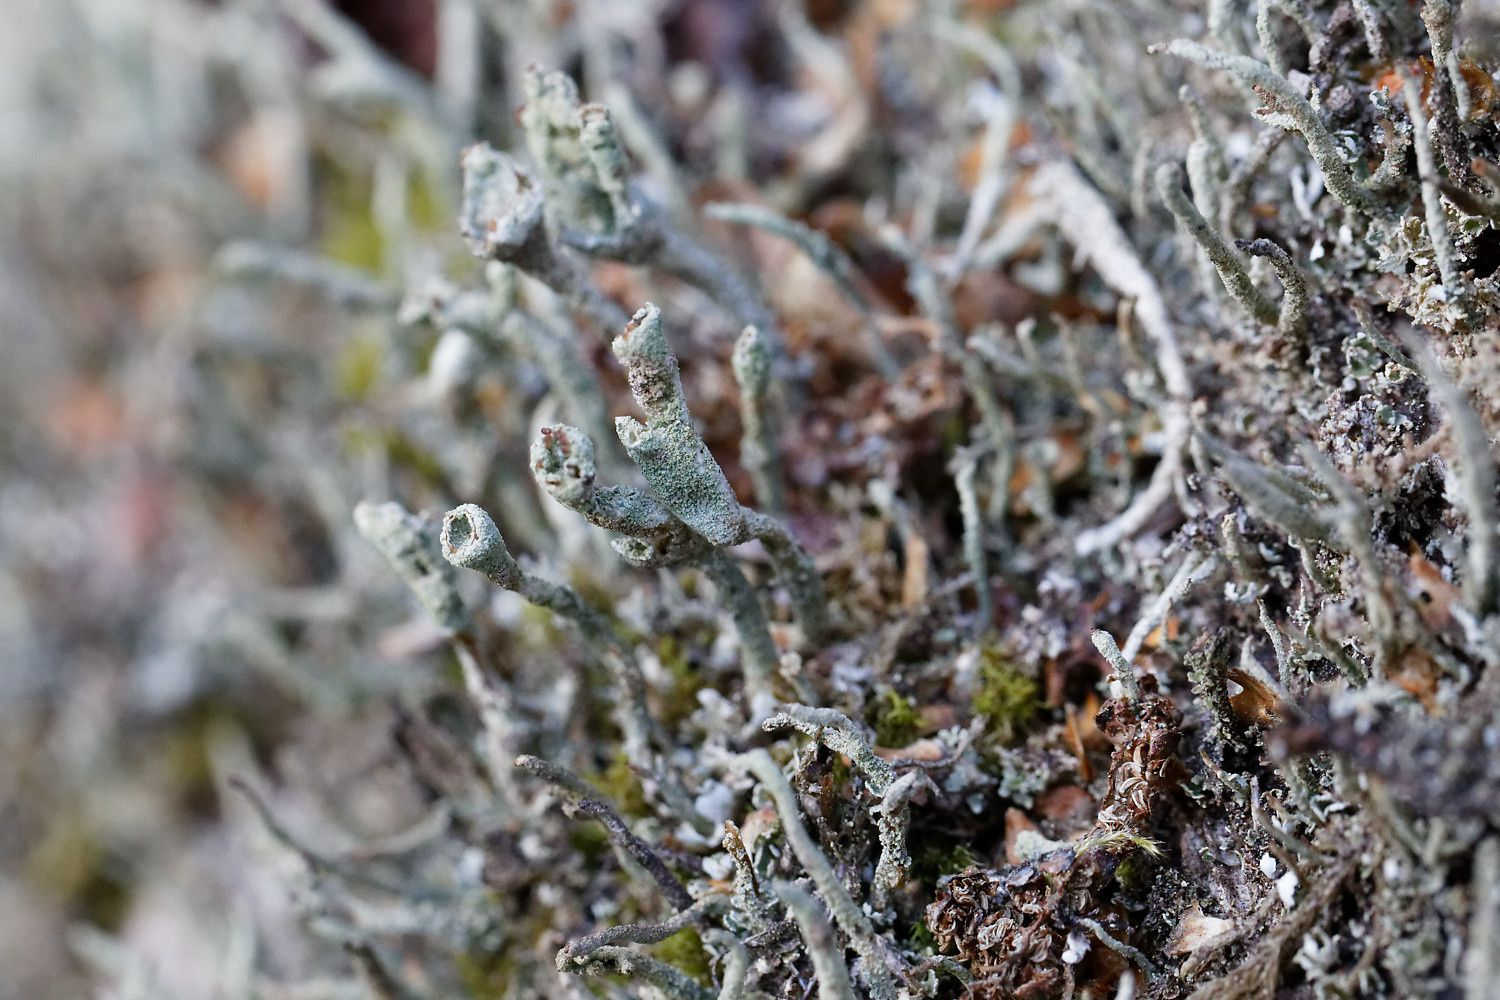 Cladonia coniocraea, possible